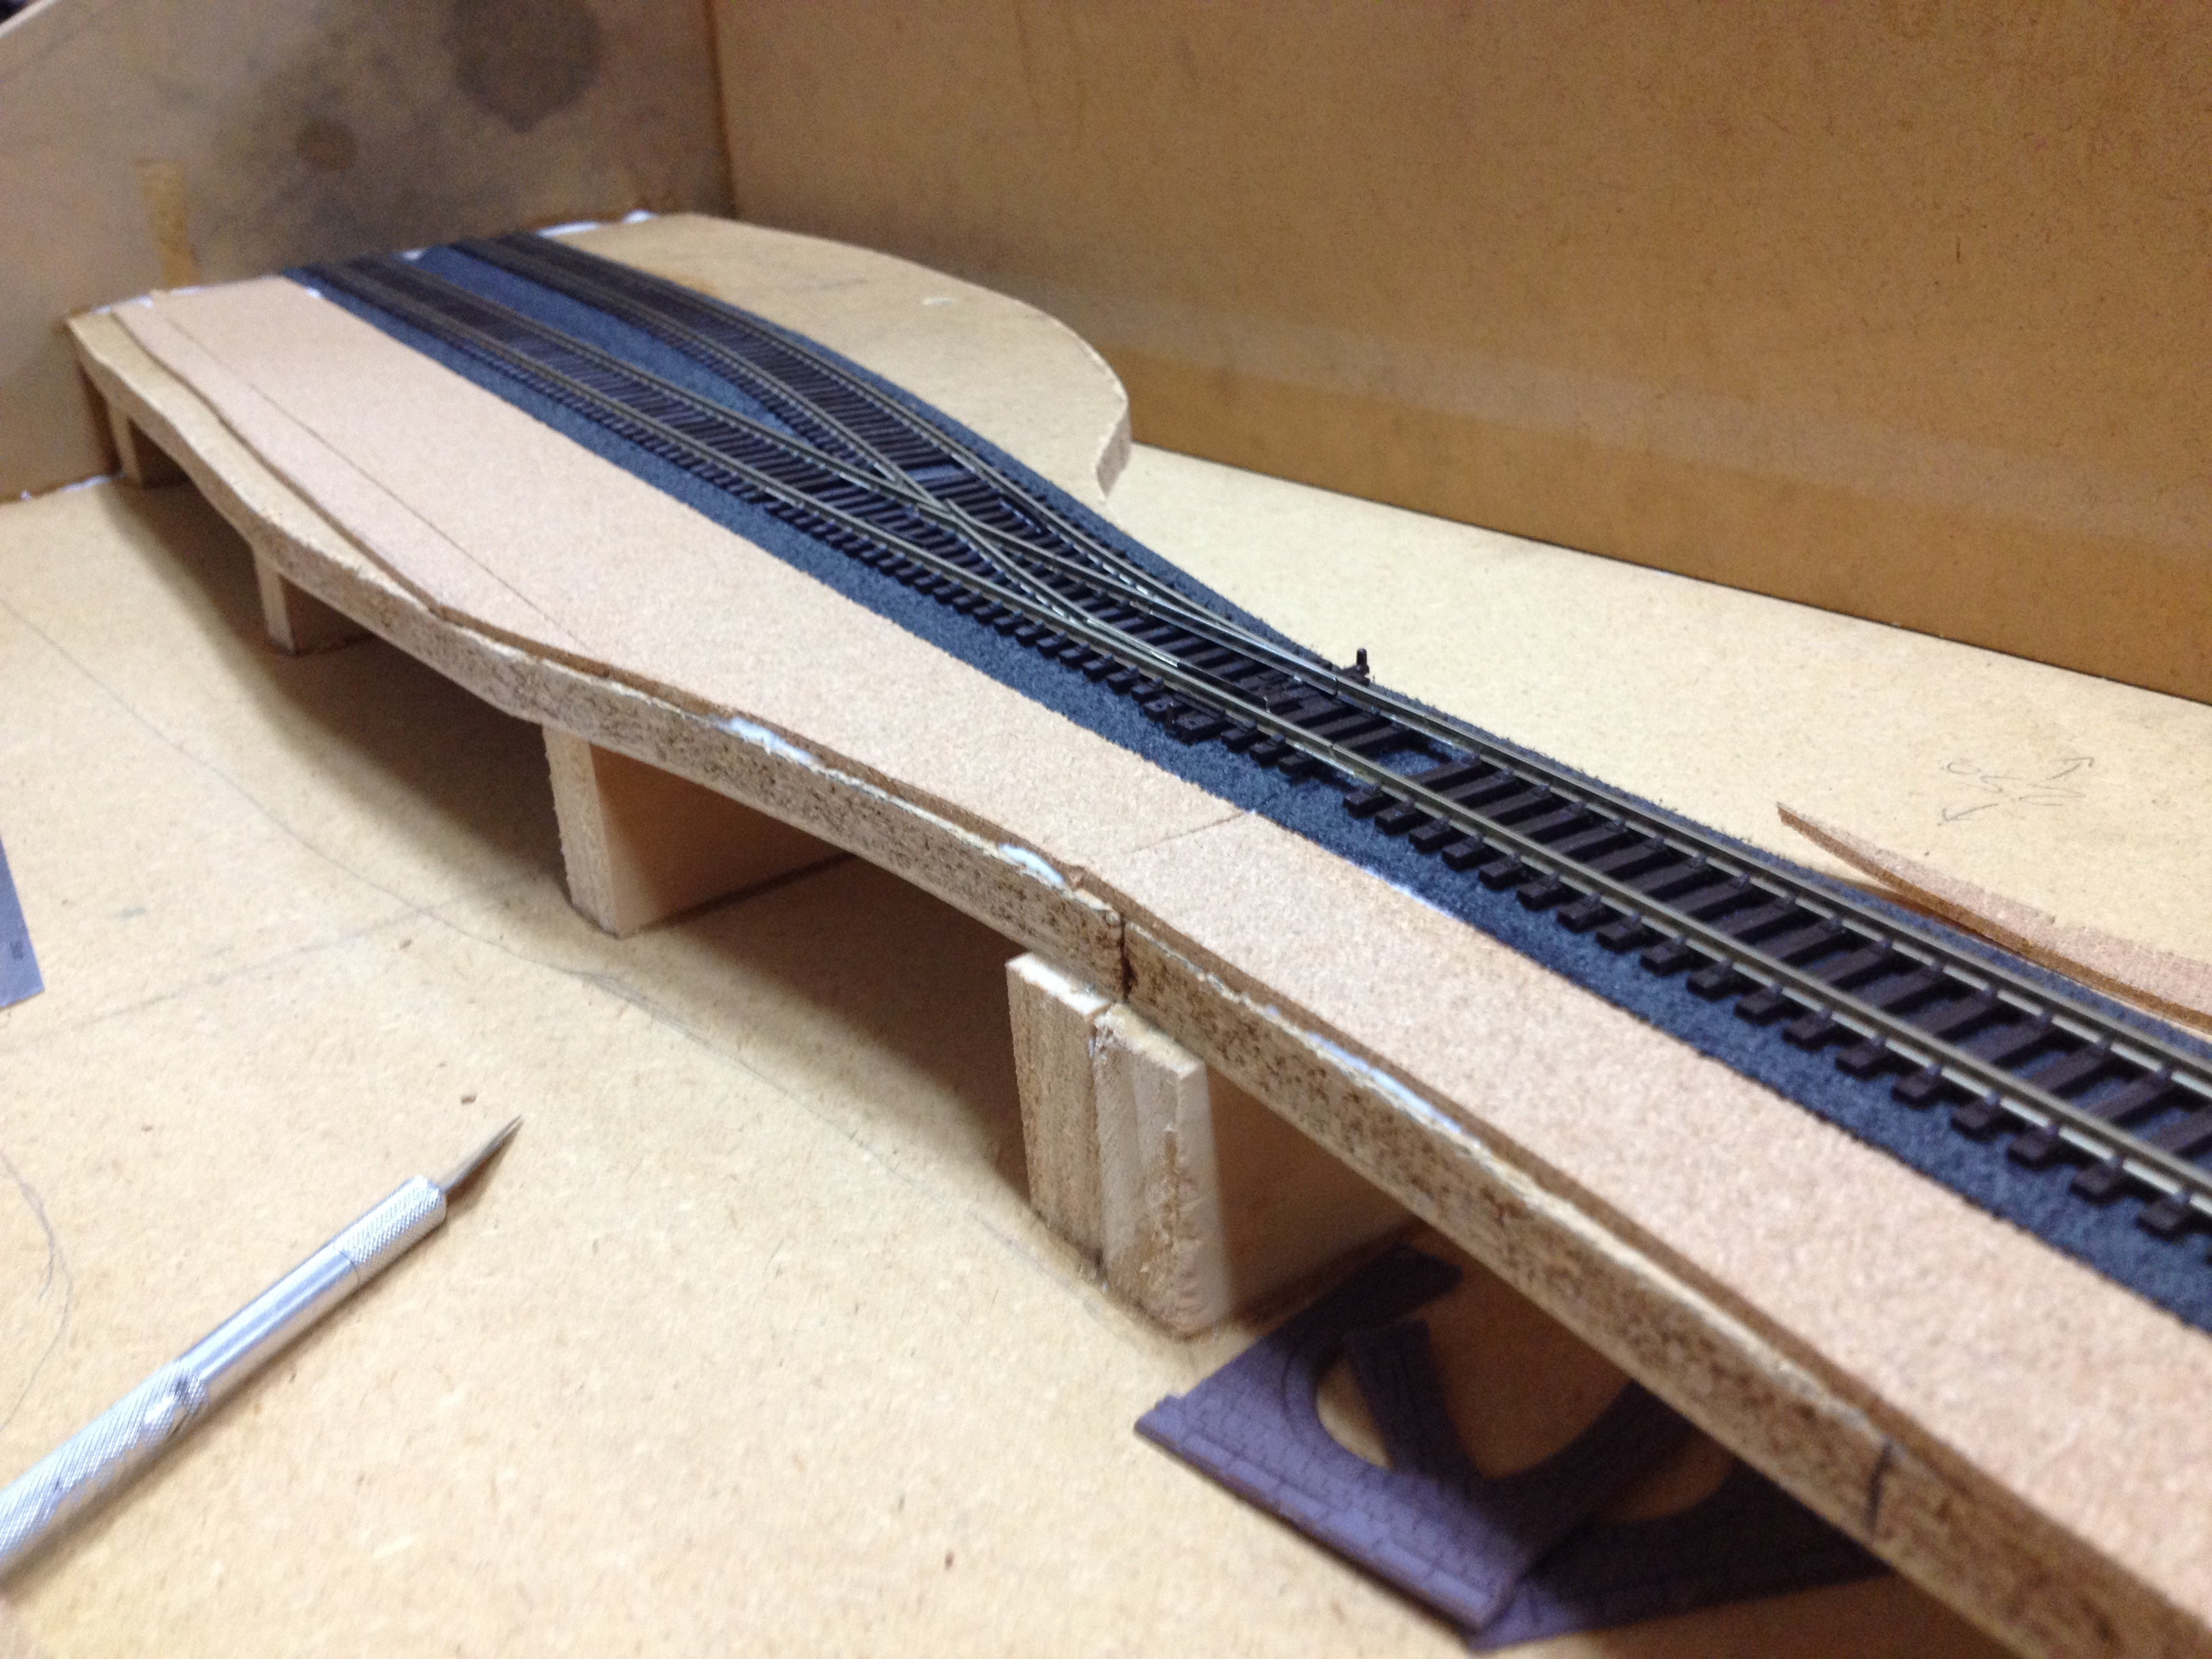 Model Trains Railways Hearns Hobbies Melbourne Australia Dcc Track Wiring Signal Light Now We Move On To Fixing Down The